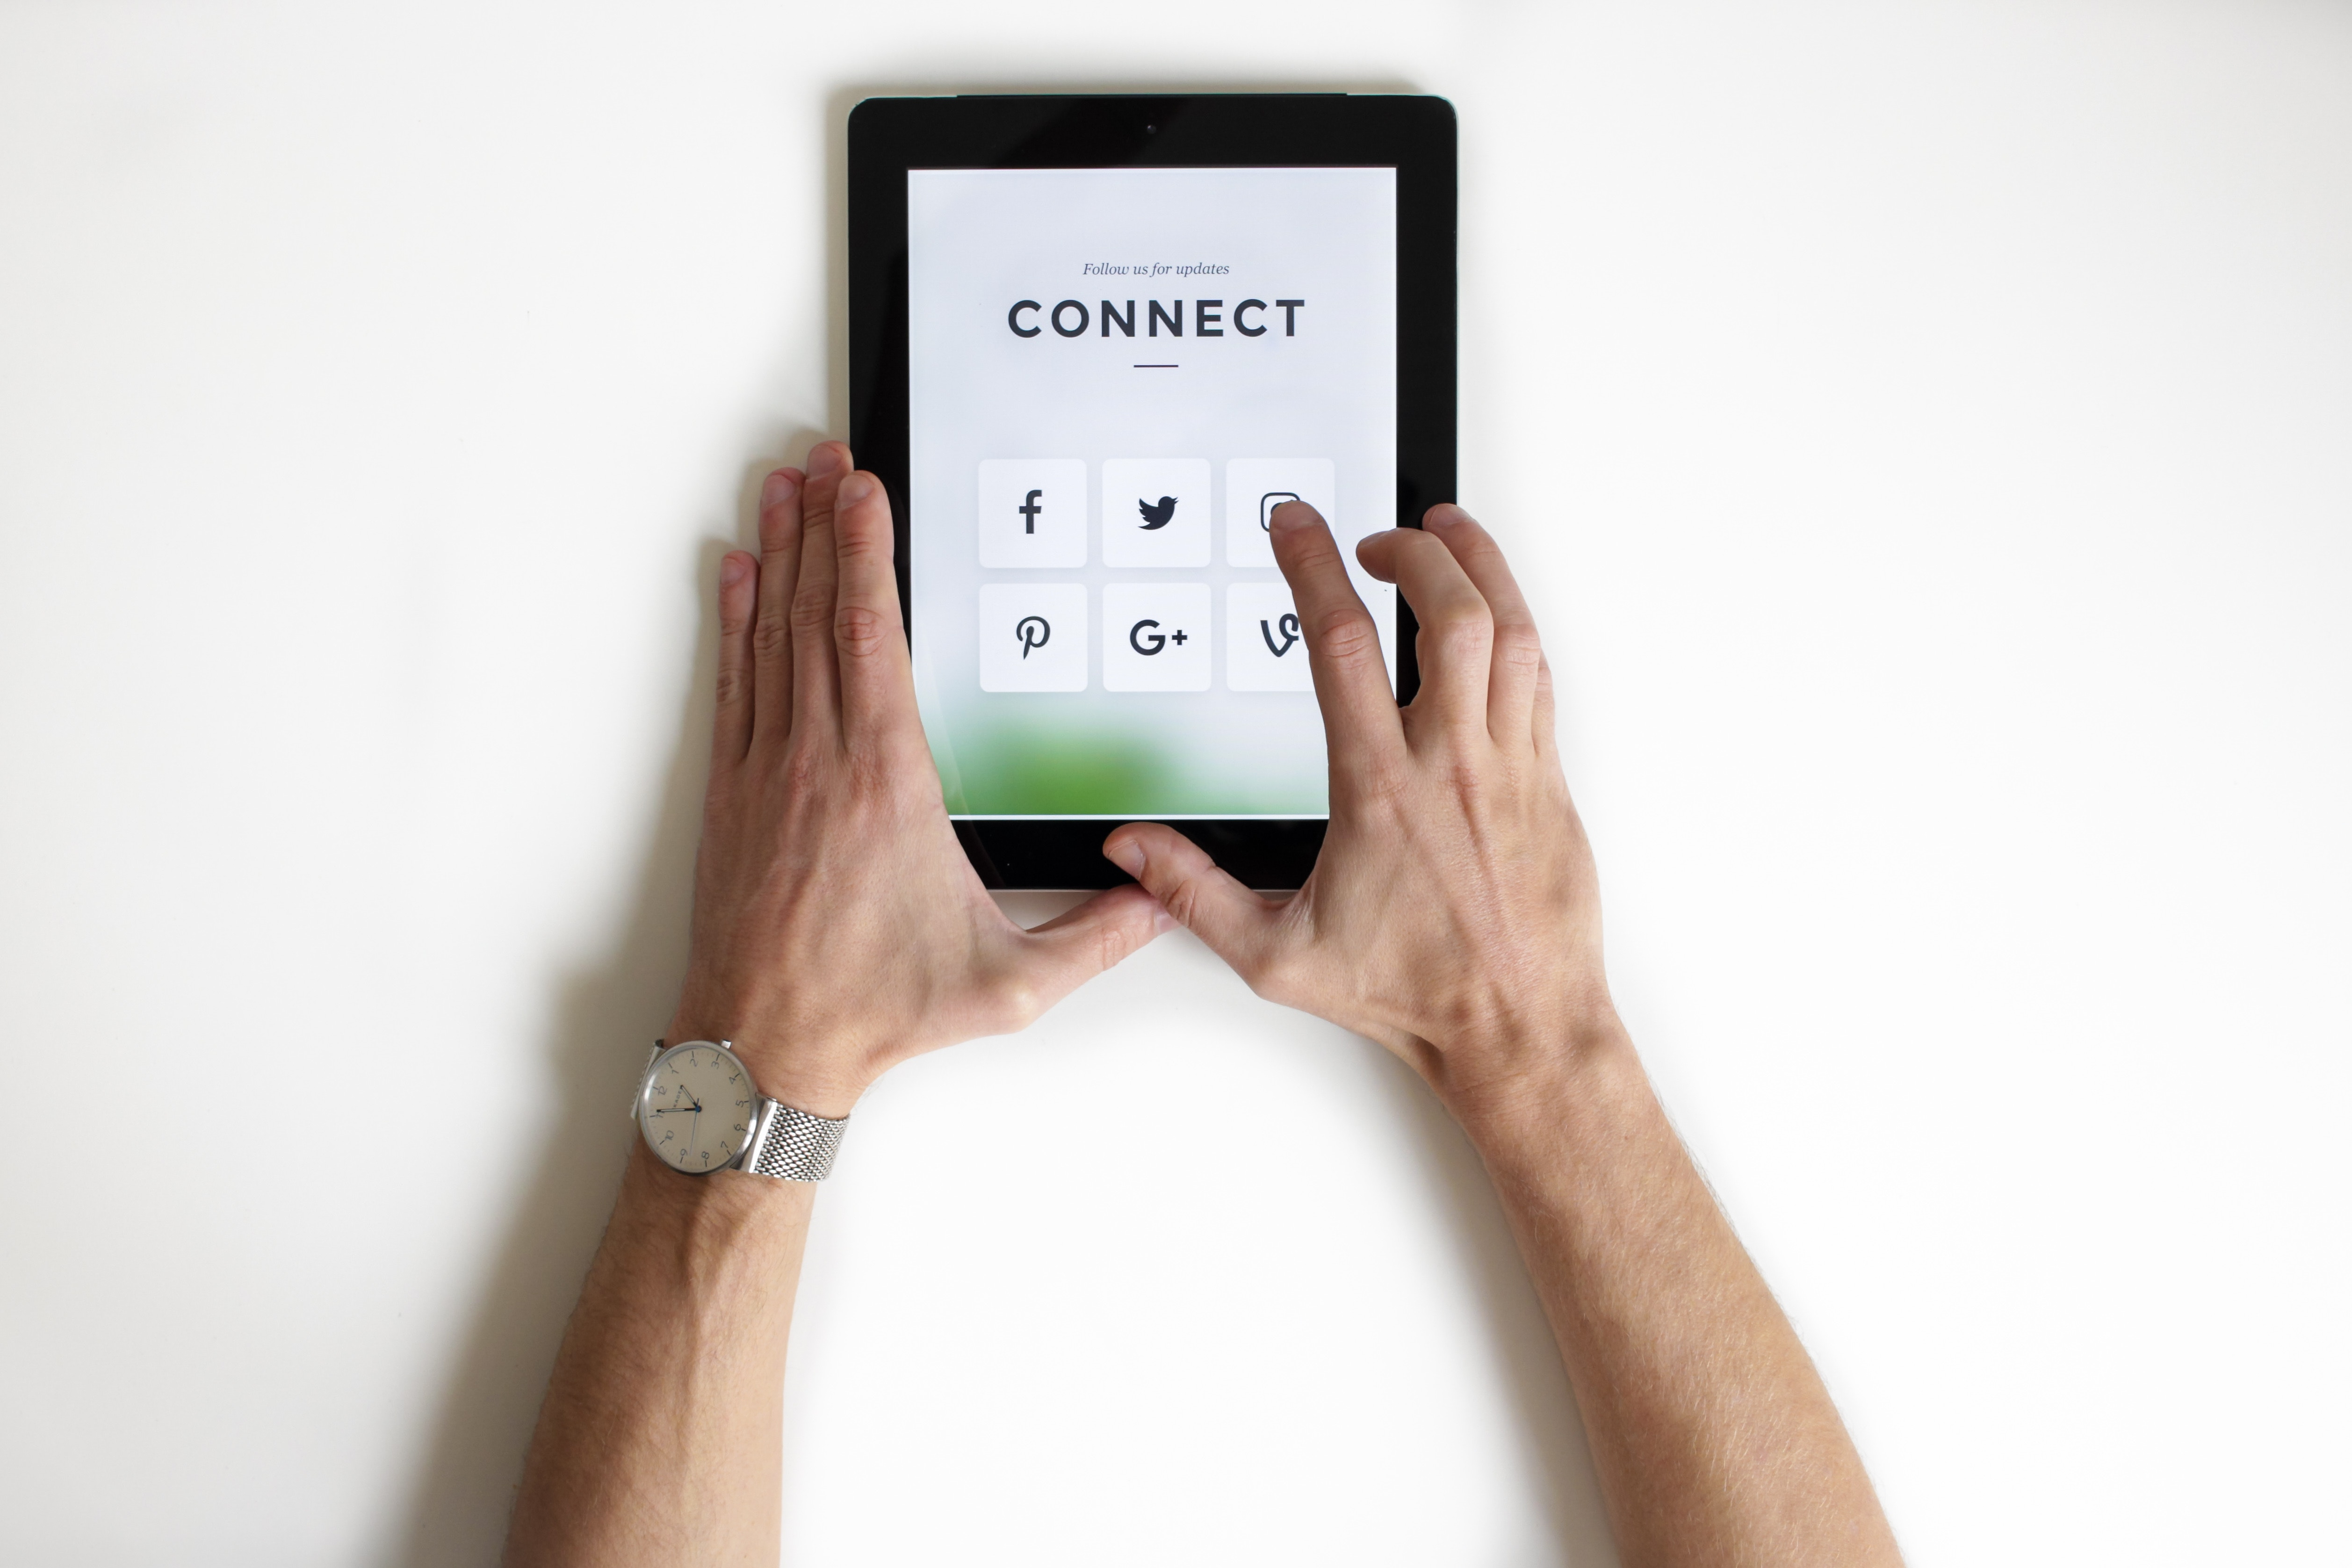 Social media sites, like Facebook and Twitter, provide a great opportunity for online ESL teacher networking.